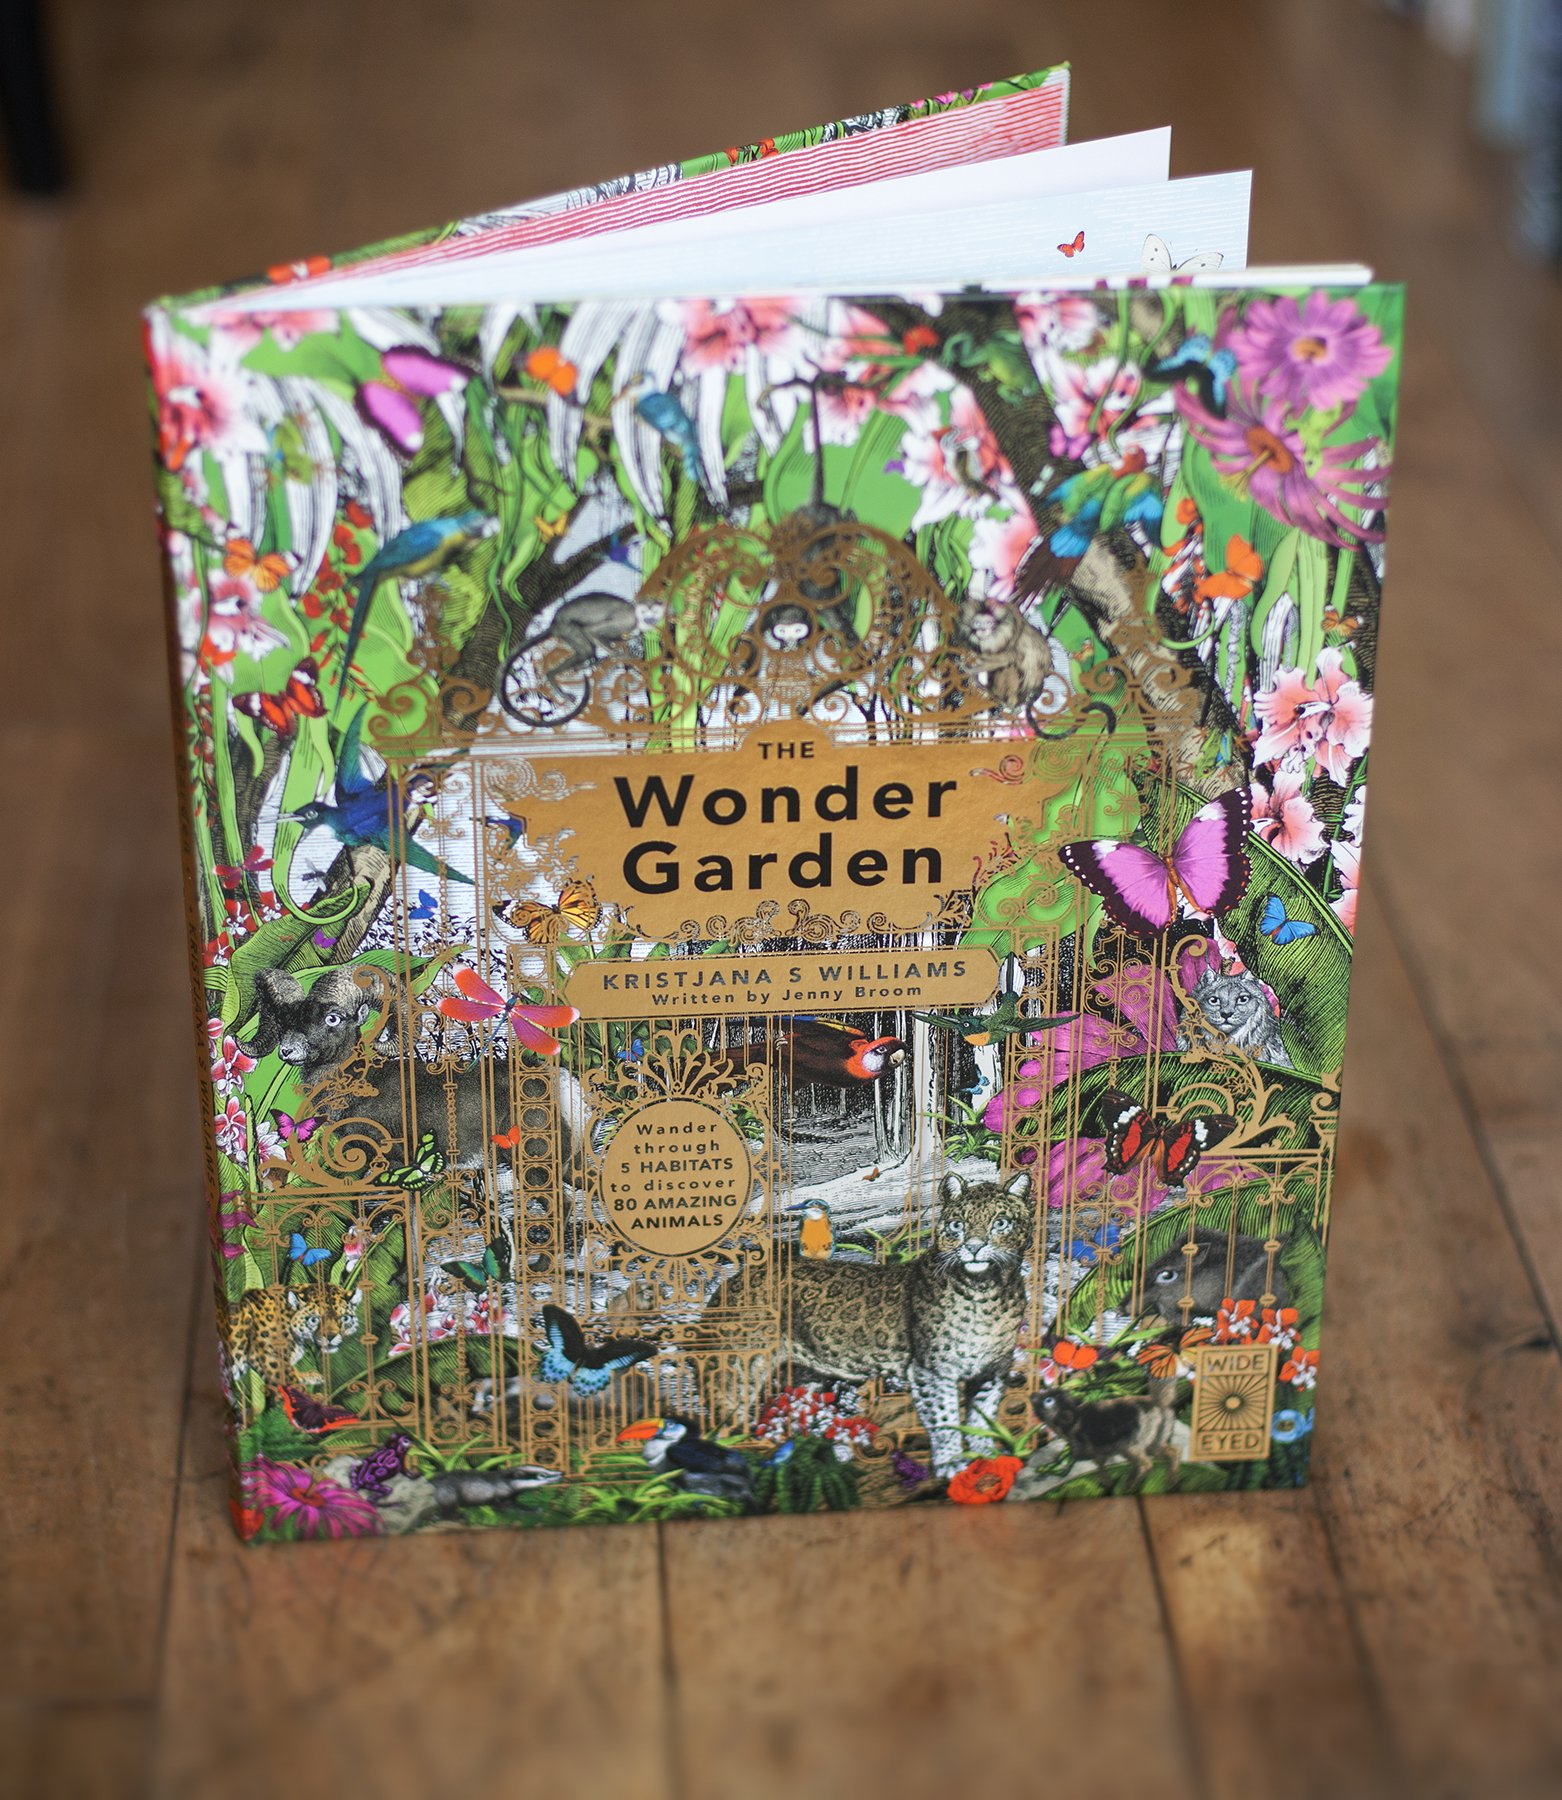 The Wonder Garden: Wander through 5 habitats to discover 80 amazing animals by Wide Eyed Editions (Image #15)